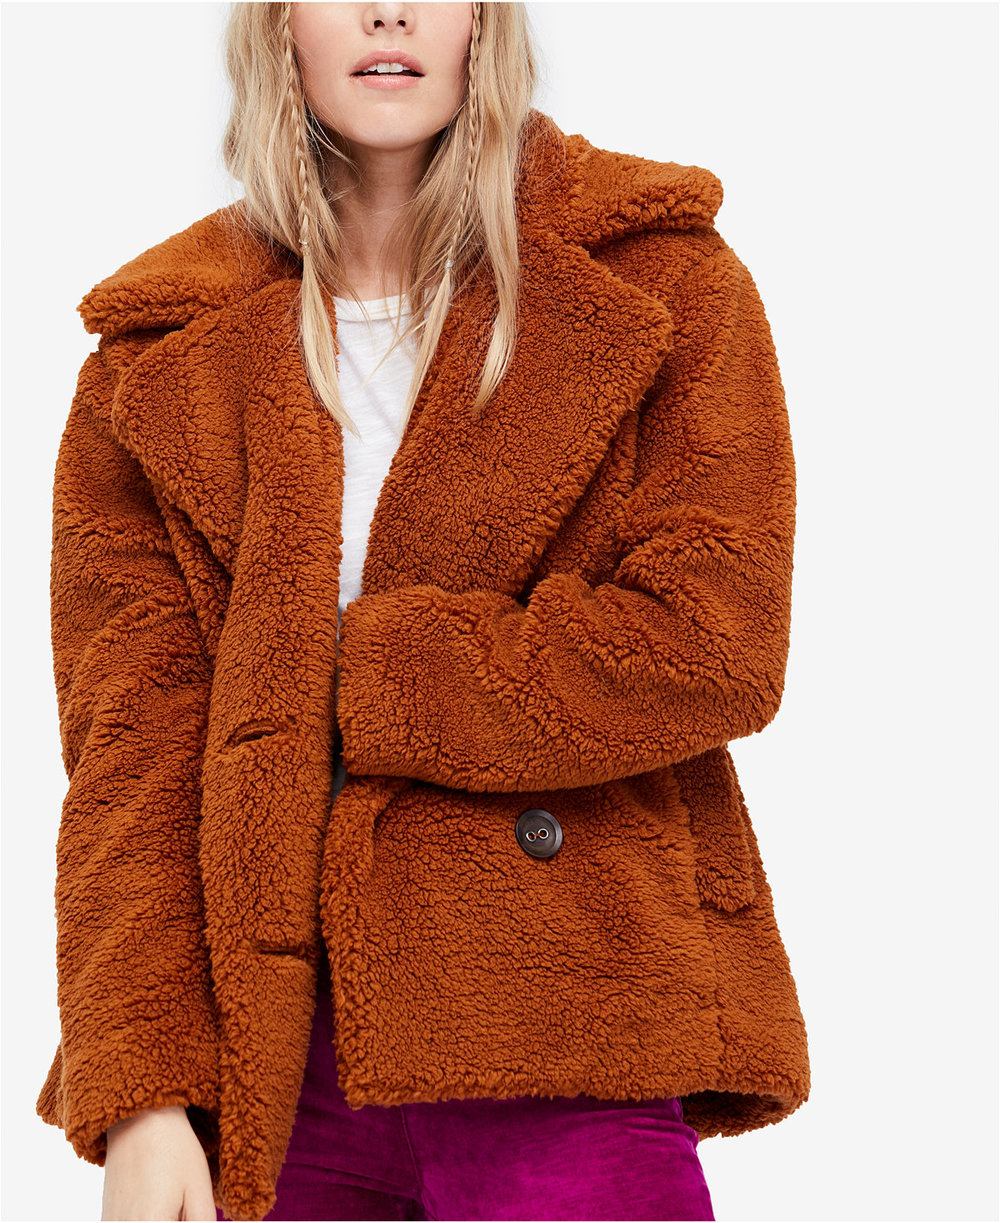 Free People Teddy Faux-Fur Peacoat